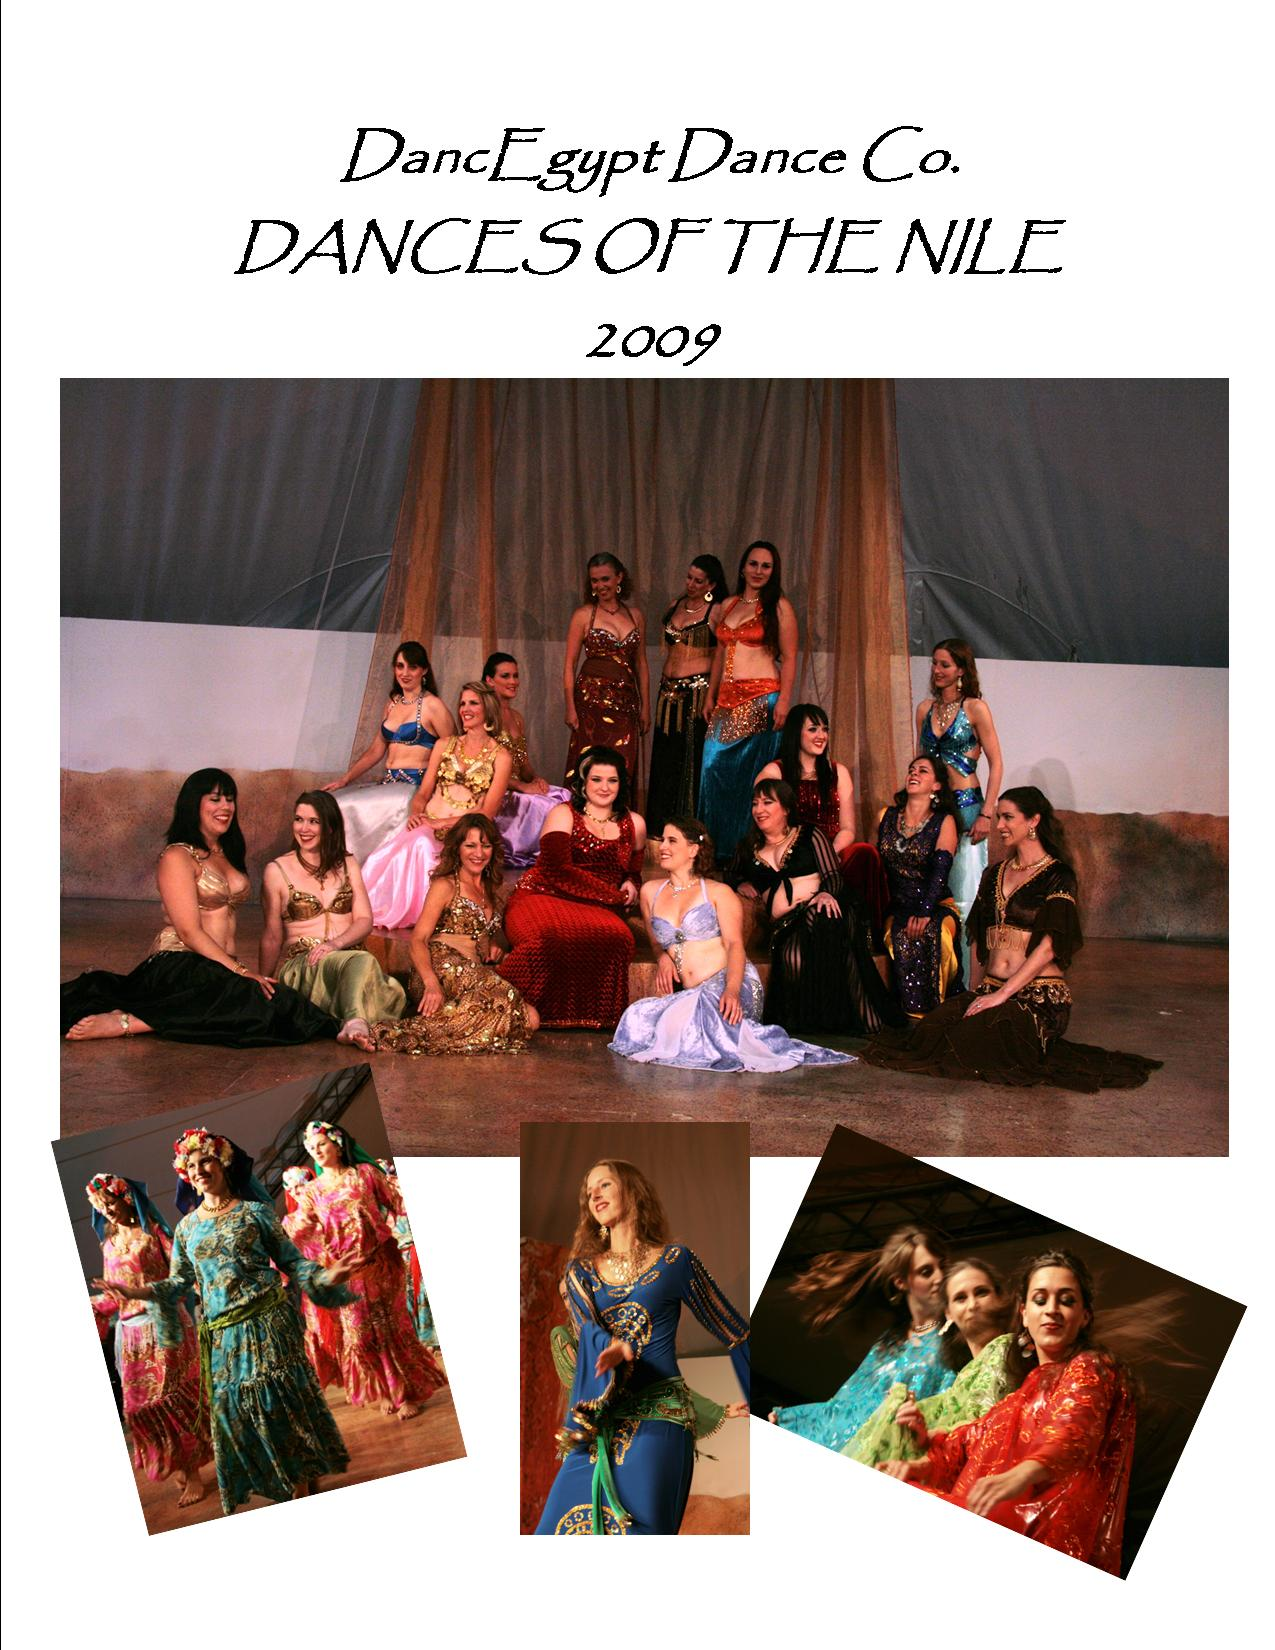 Dances_of_the_Nile_Cast Photo_2009